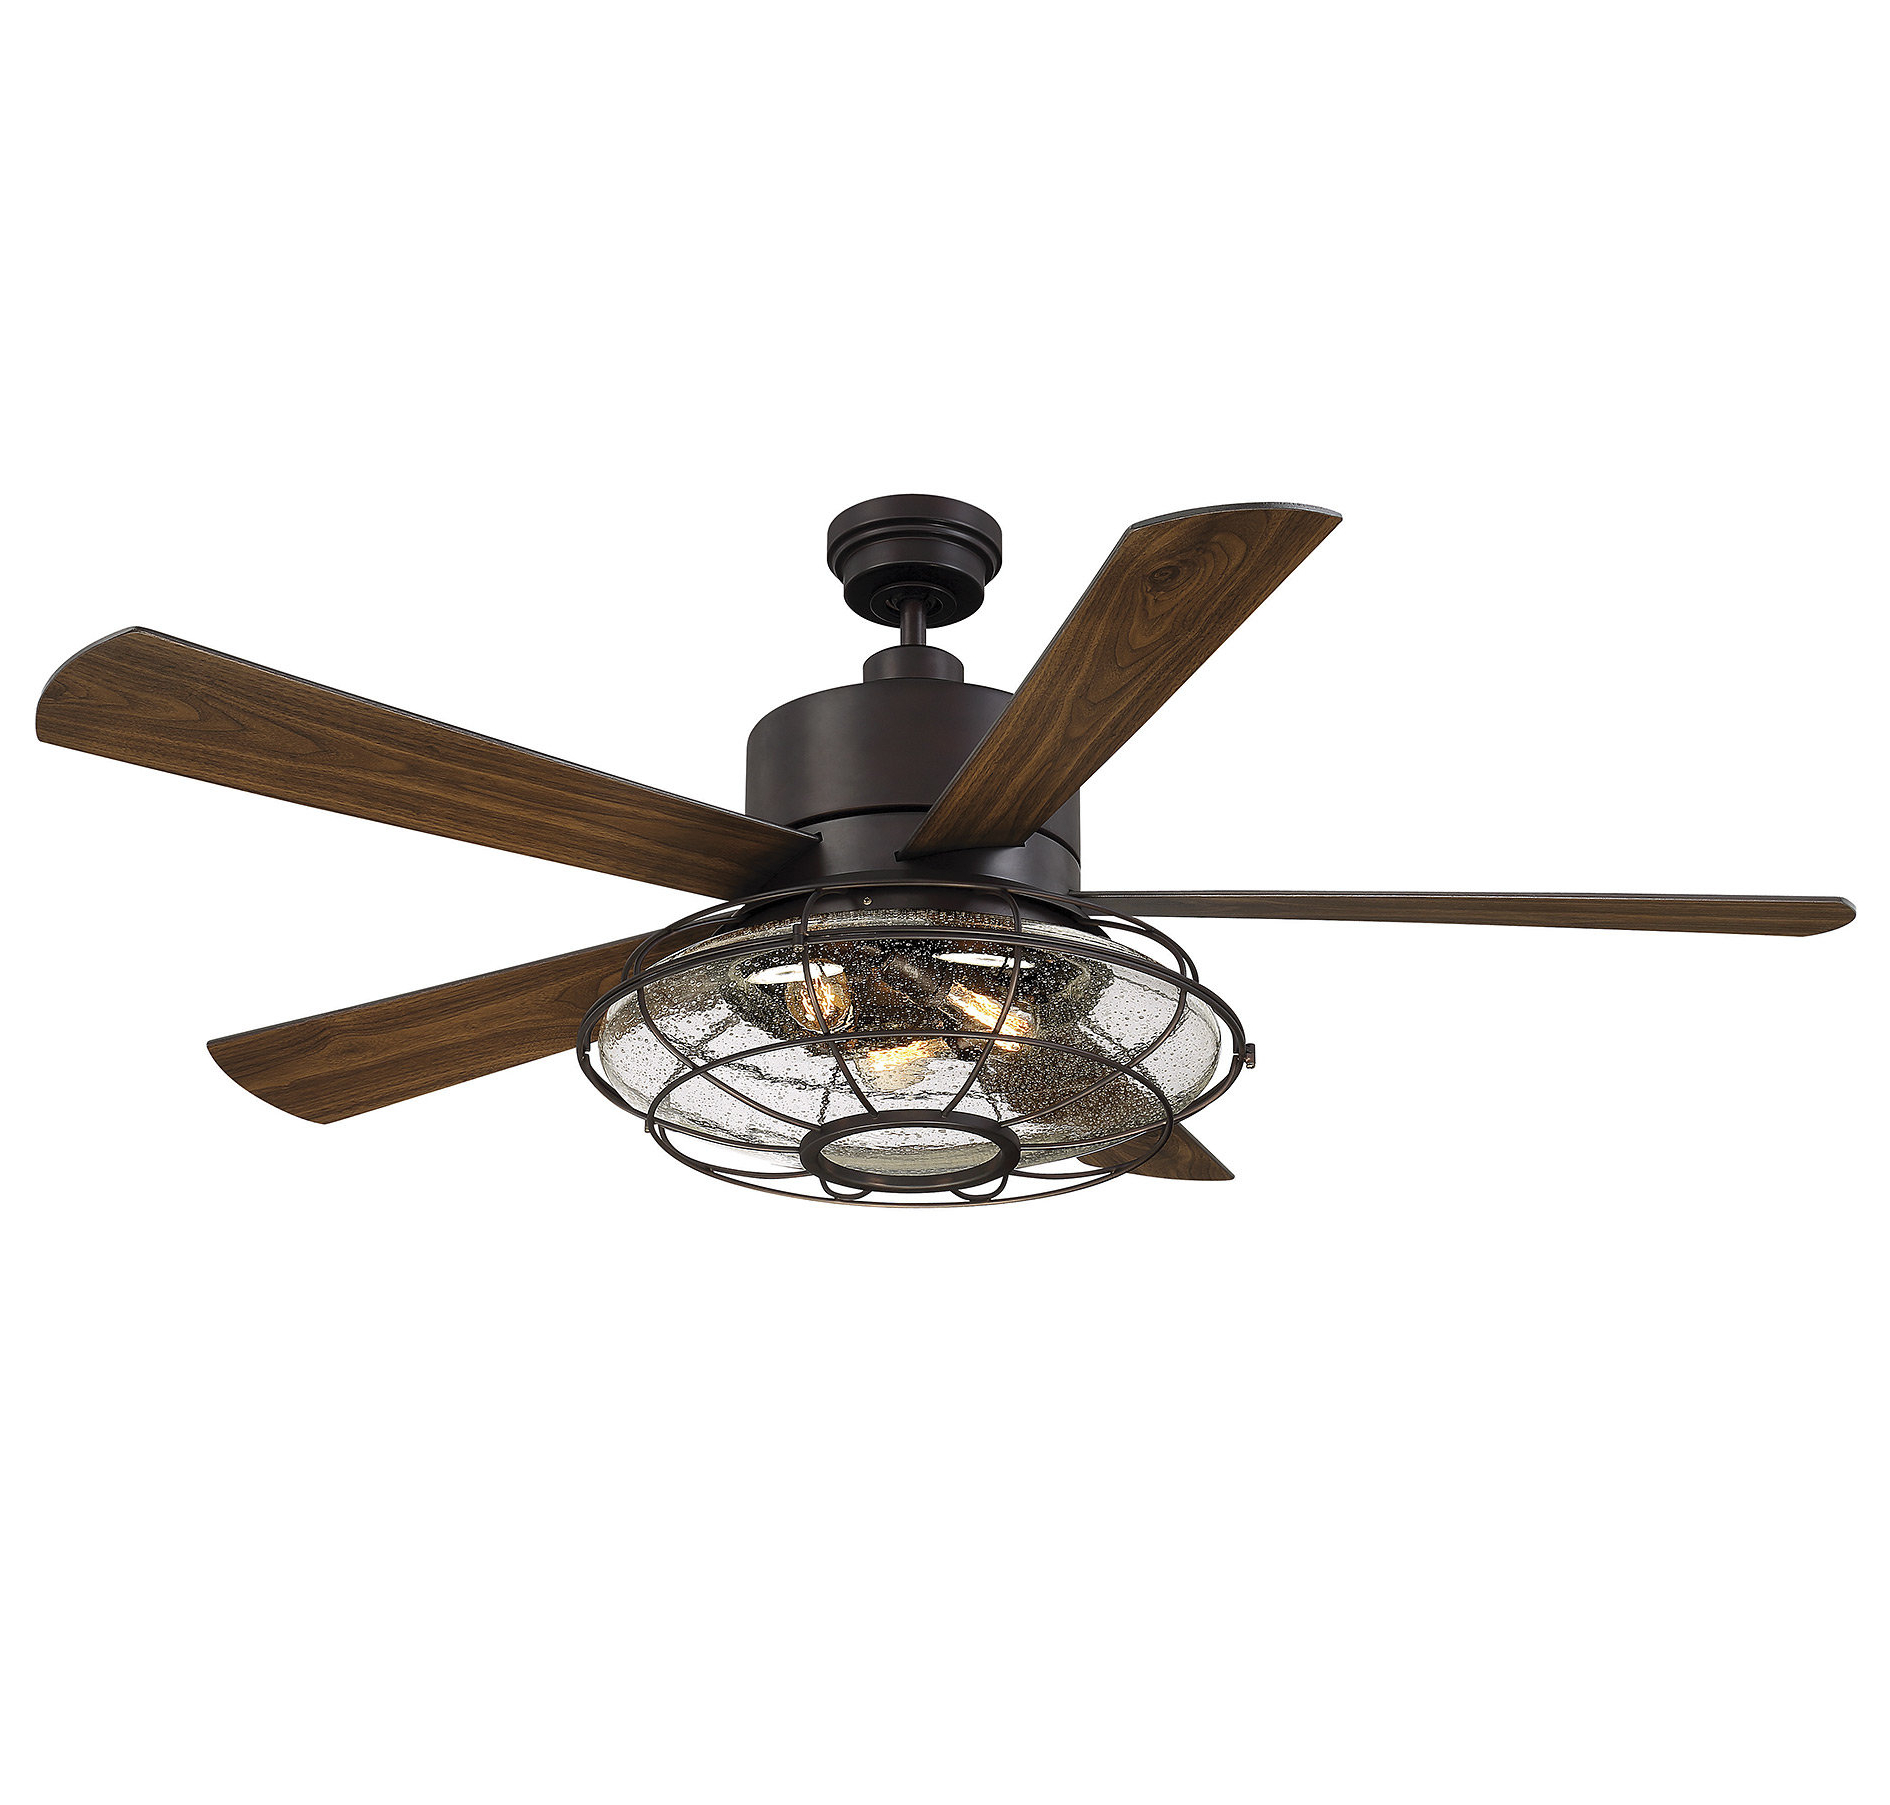 "Wilburton 5 Blade Ceiling Fans With Remote Regarding Most Recently Released 56"" Roberts 5 Blade Ceiling Fan With Remote Control, Light Kit Included (View 4 of 20)"